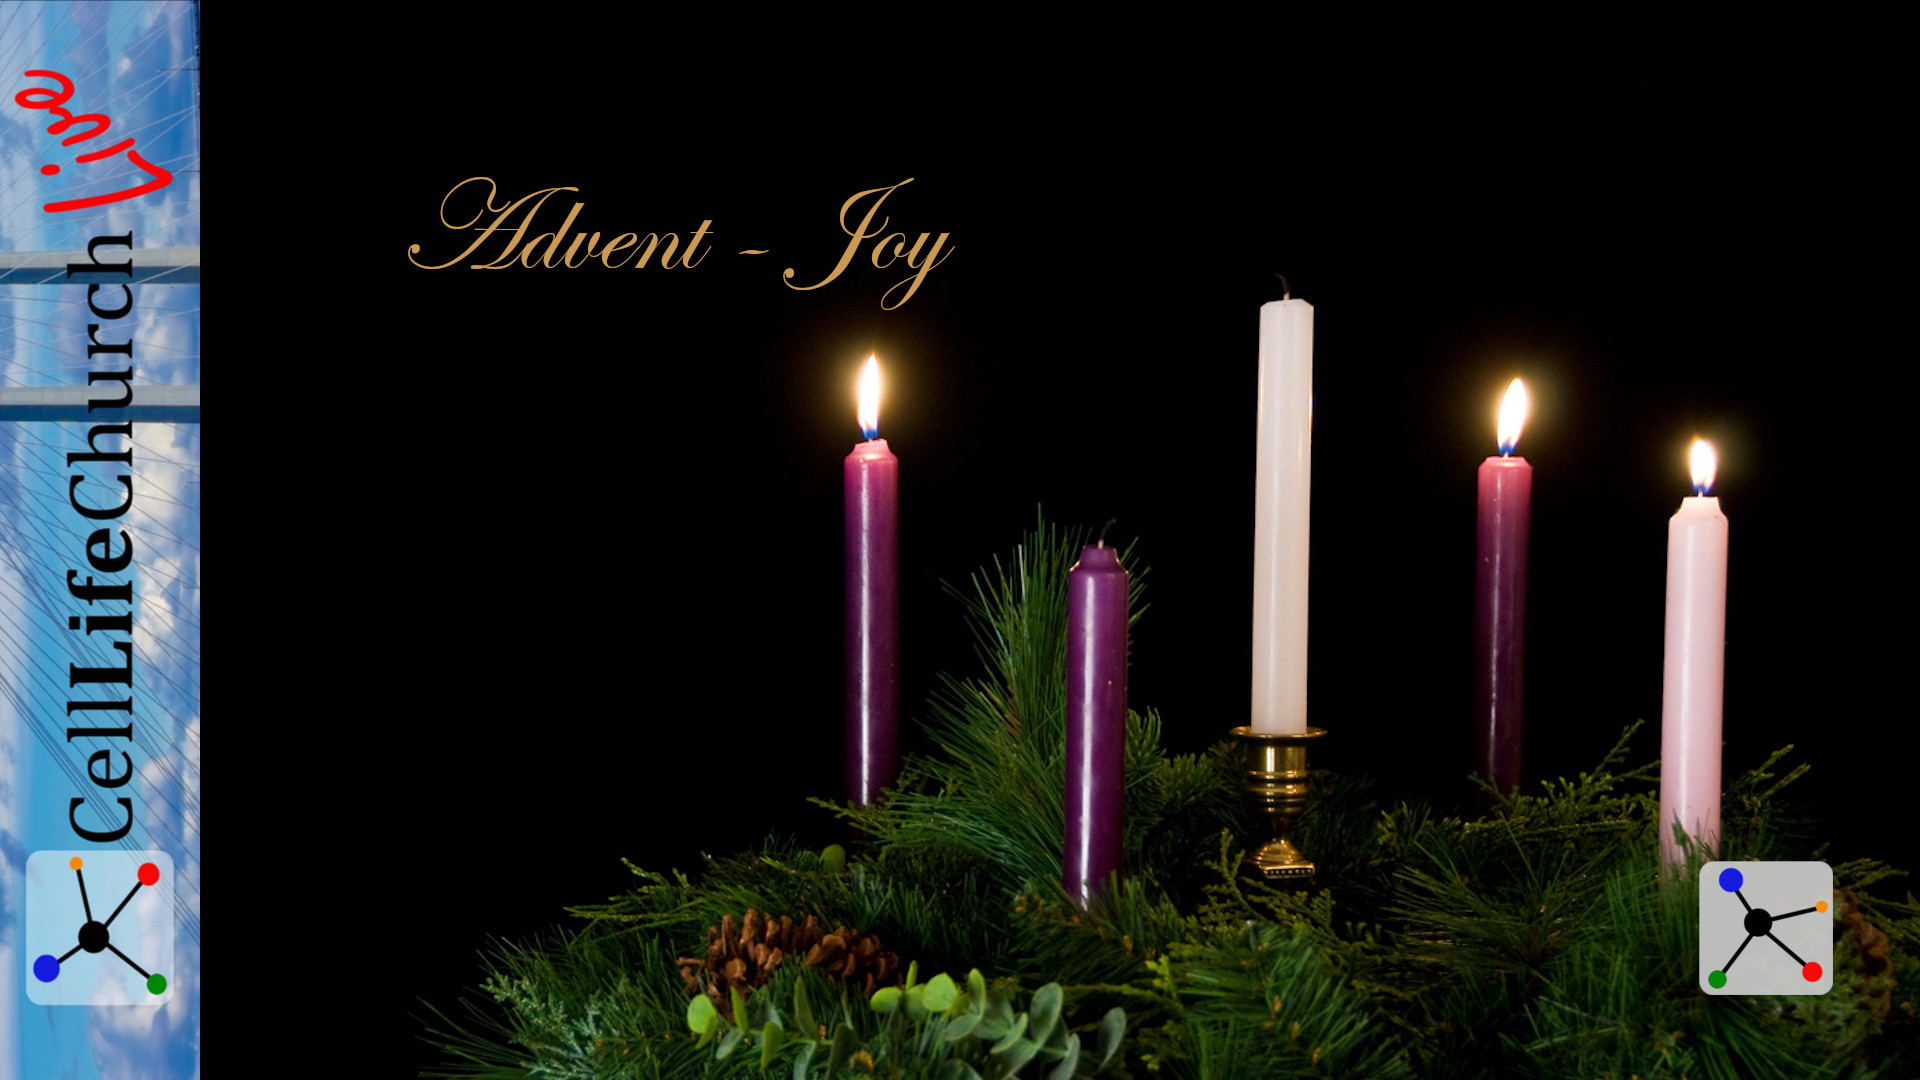 Advent - Joy